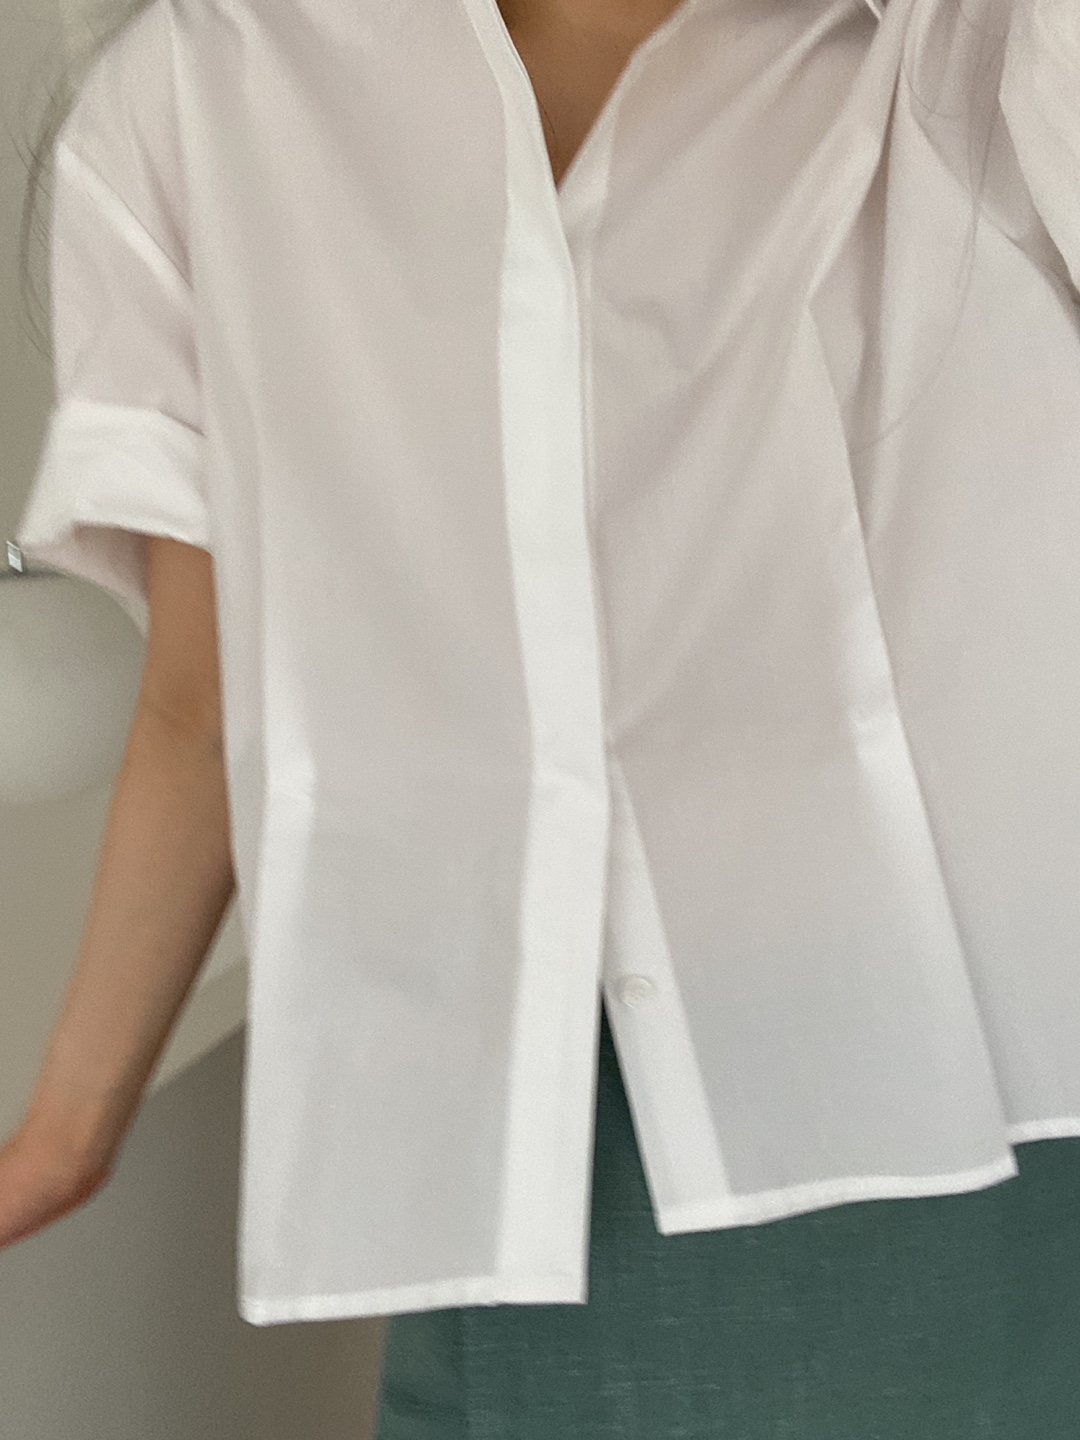 bell sleeve shirts-white